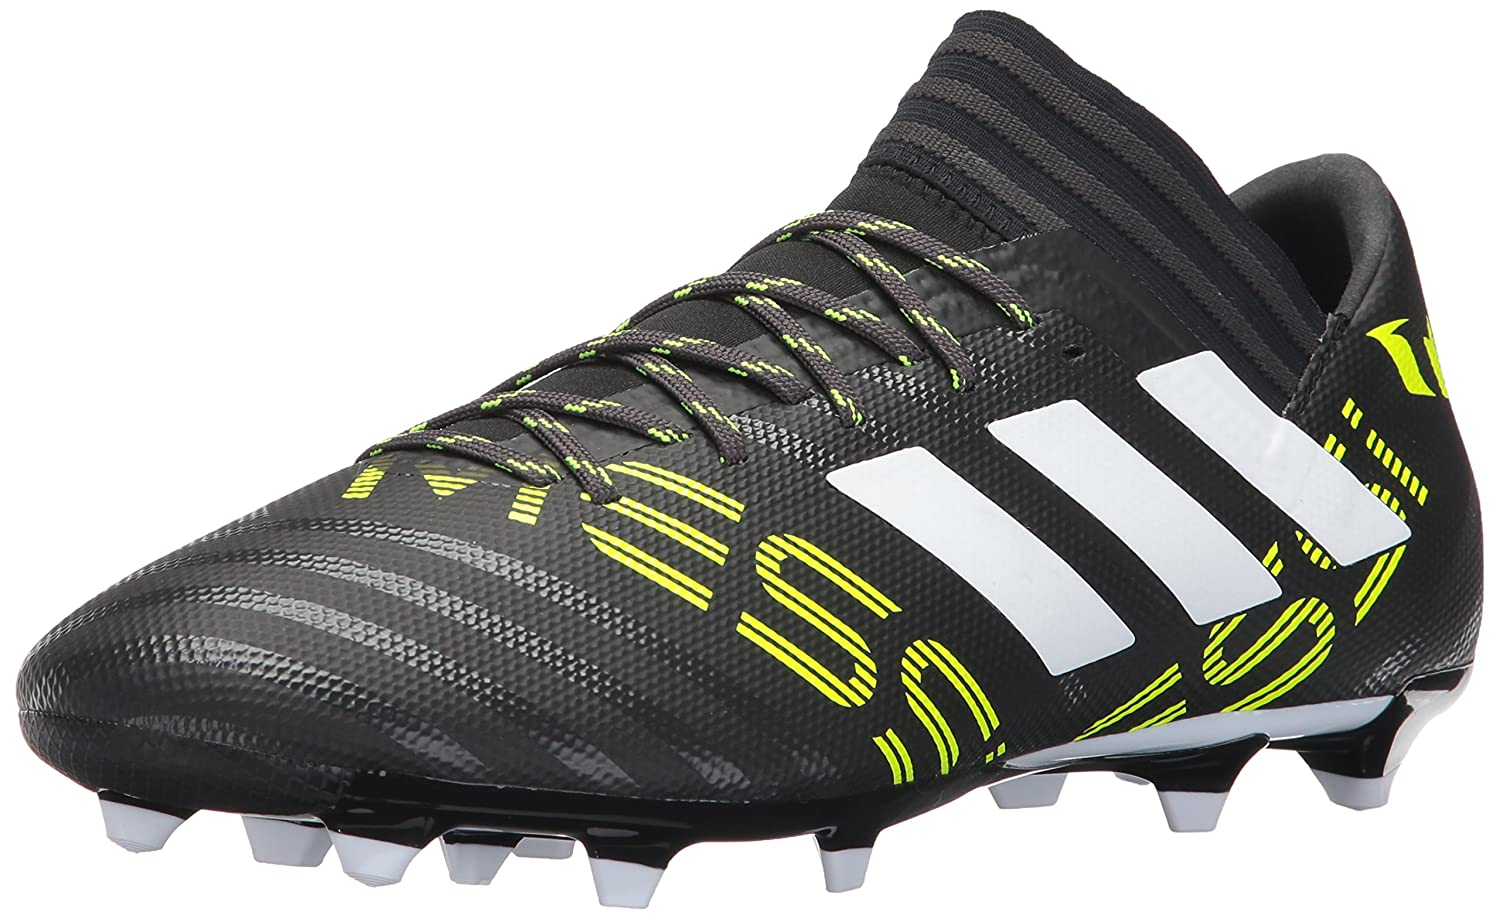 adidas Originals Men's Nemeziz Messi 17.3 Firm Ground Cleats Soccer Shoe BY2413